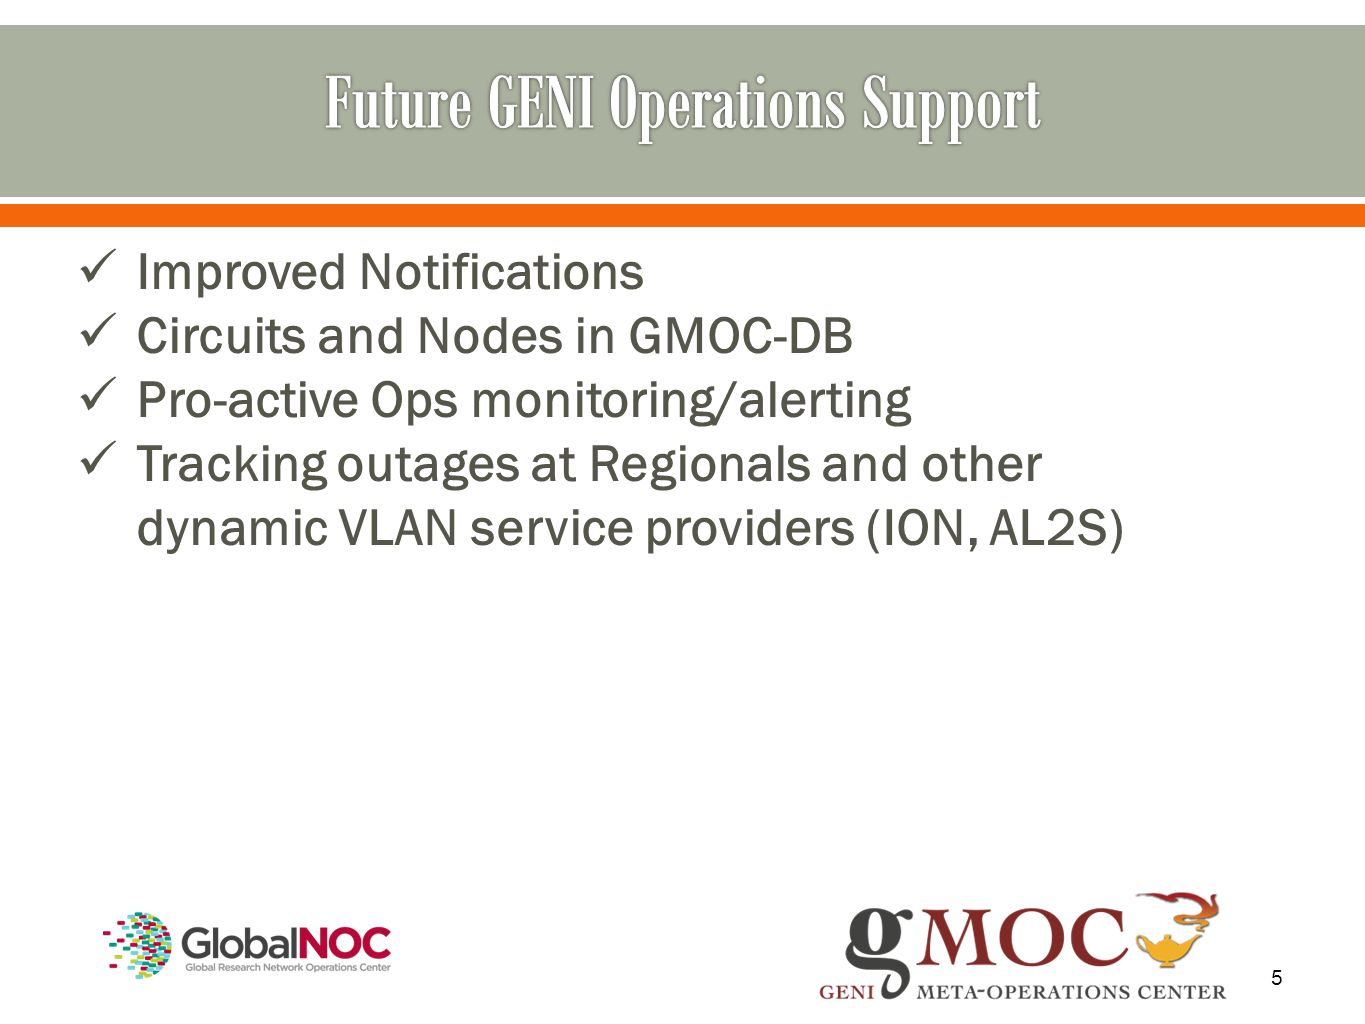 5 Improved Notifications Circuits and Nodes in GMOC-DB Pro-active Ops monitoring/alerting Tracking outages at Regionals and other dynamic VLAN service providers (ION, AL2S)